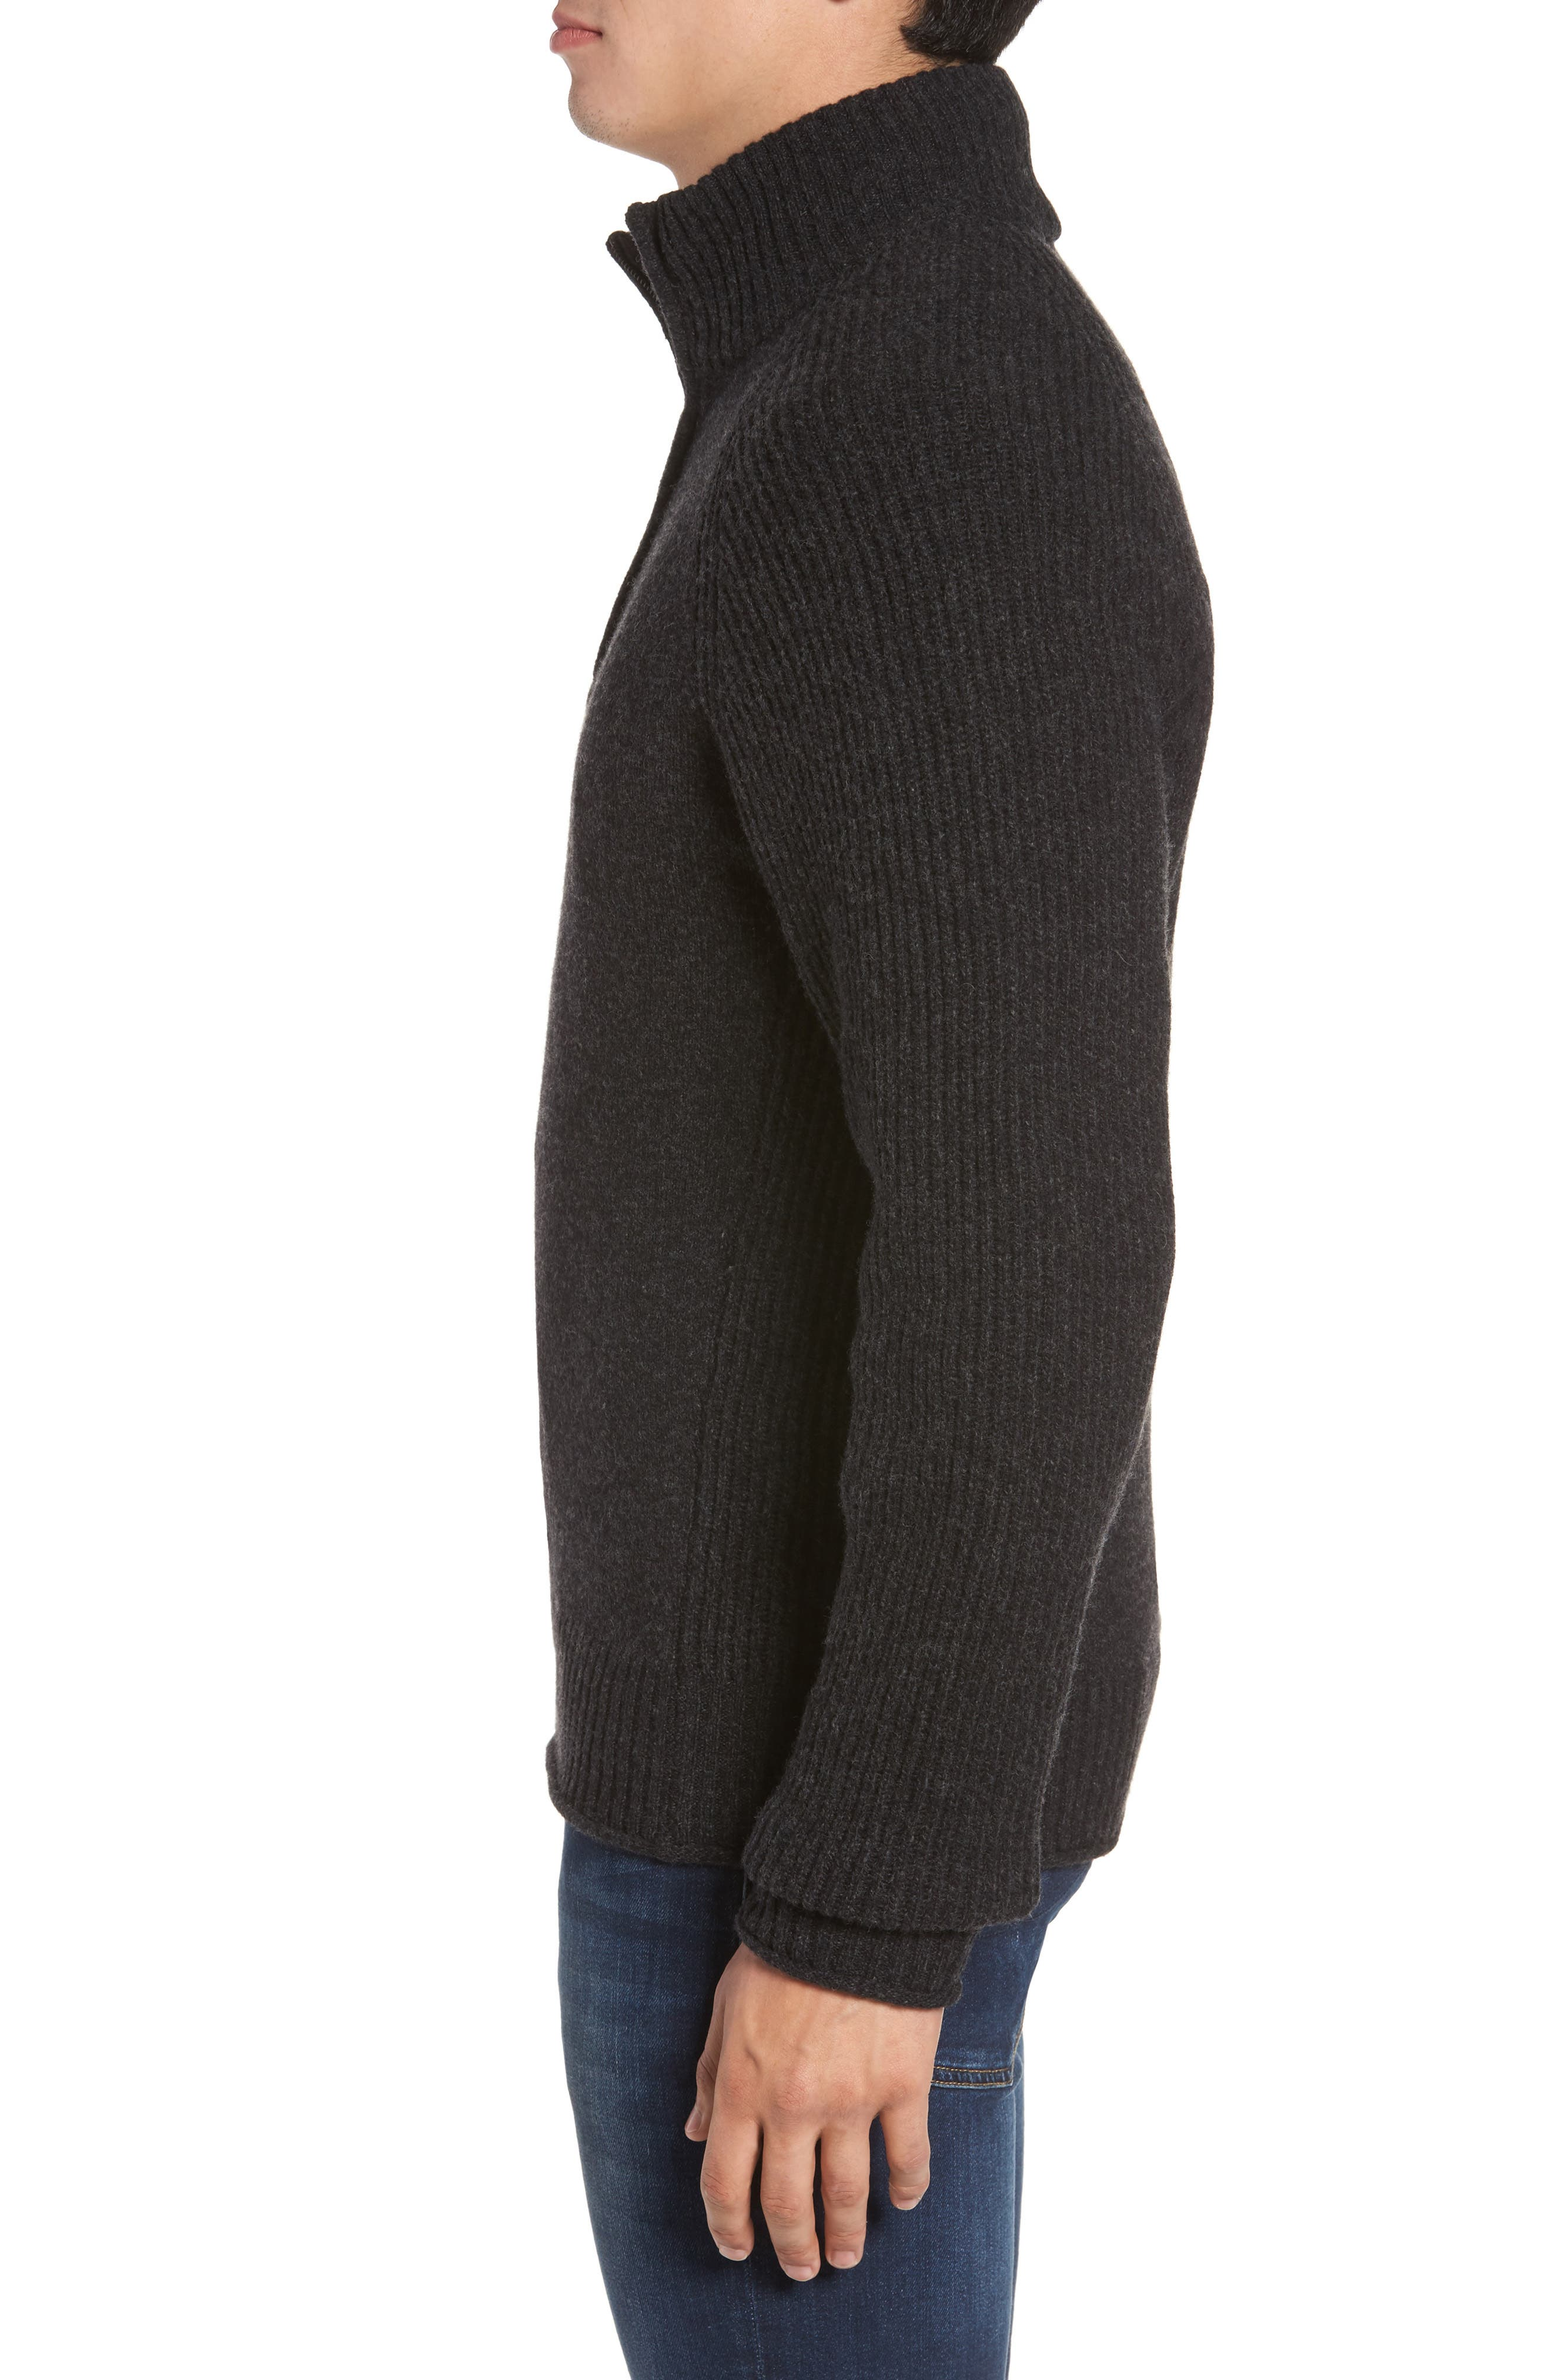 Stredwick Lambswool Sweater,                             Alternate thumbnail 3, color,                             021